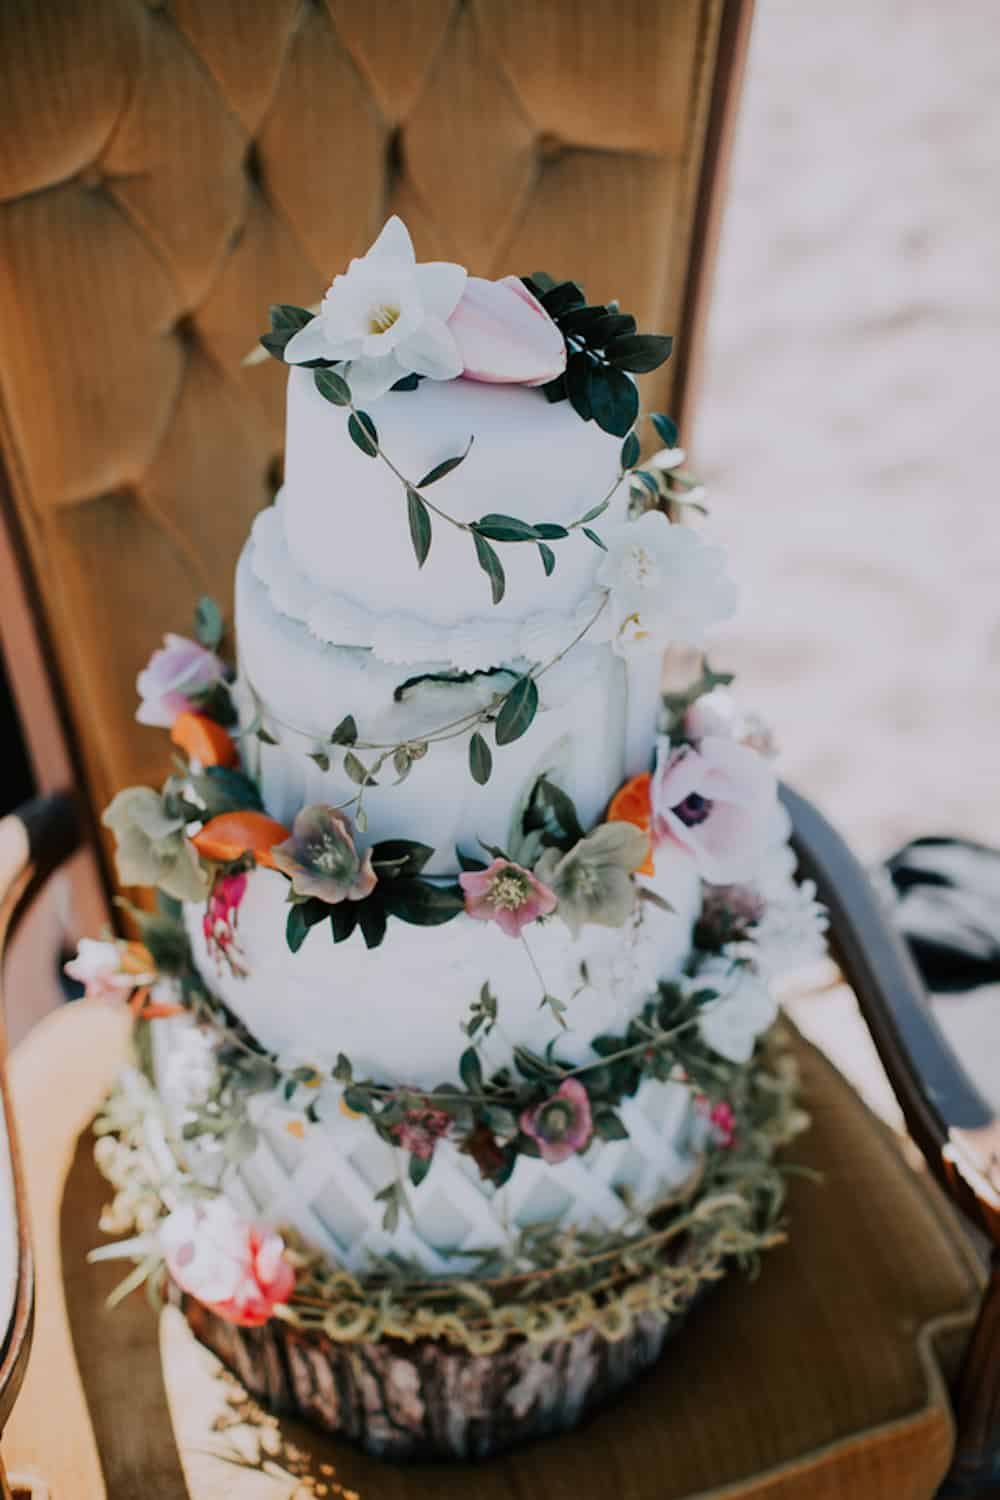 14A VafaPhotography_NorthernMichiganBohemianWeddingInspirationVafaPhoto222_low